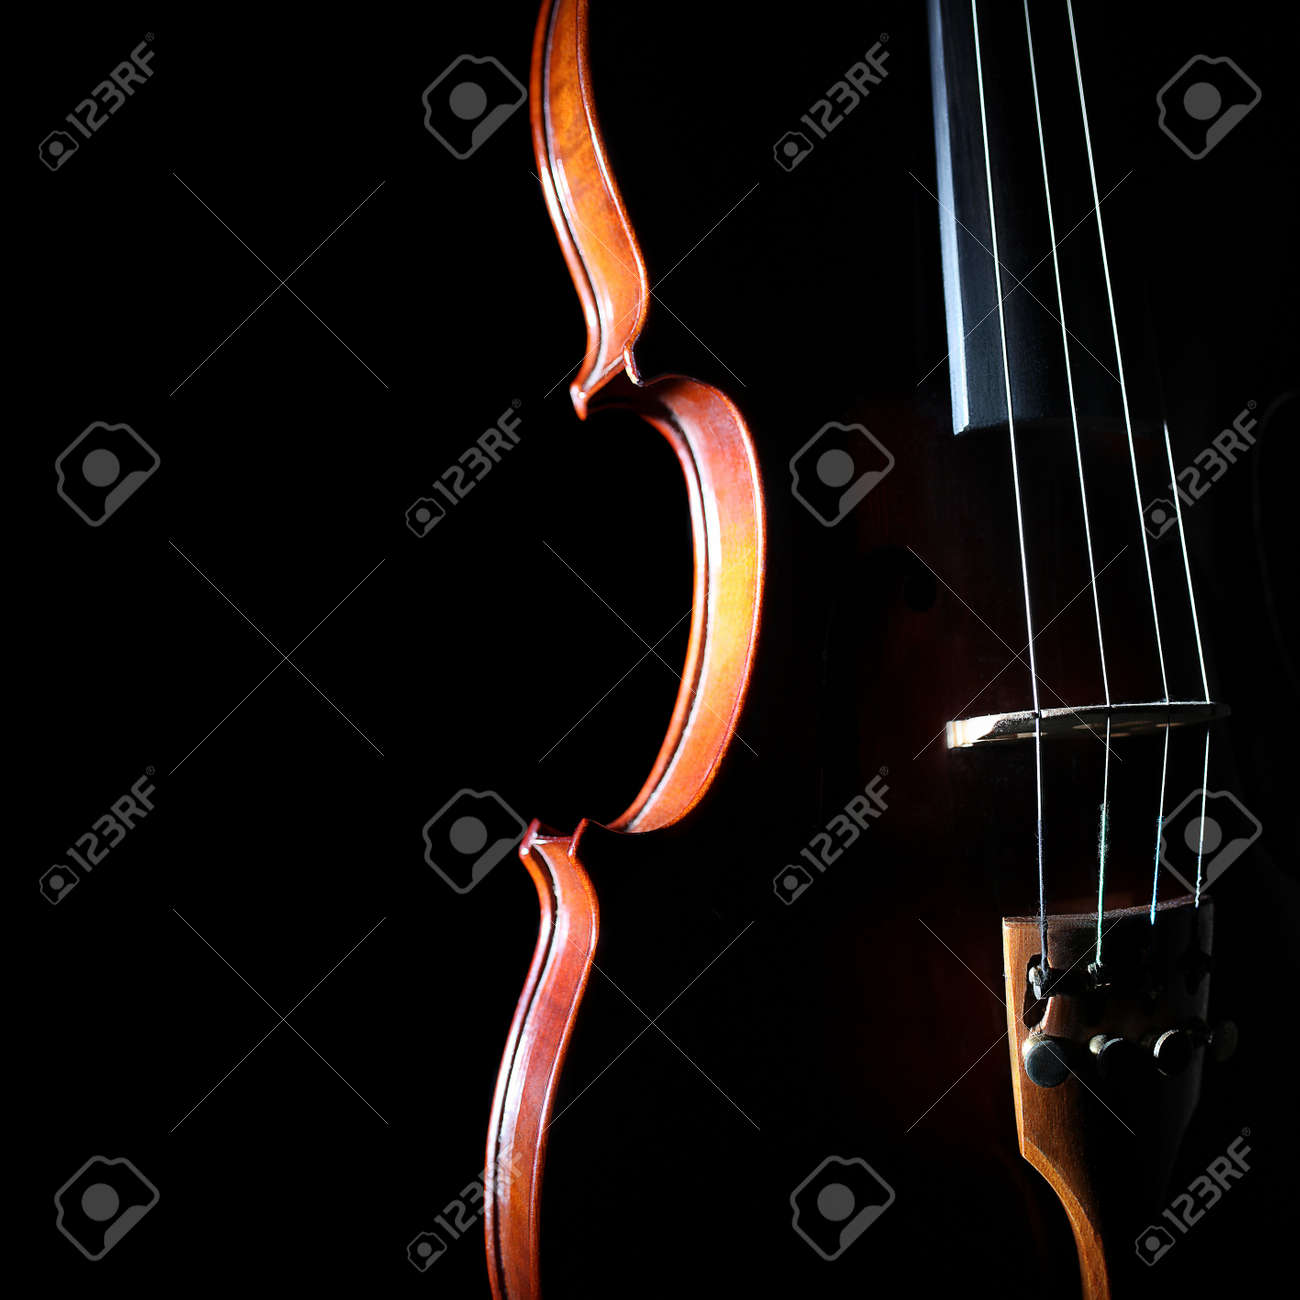 Violin orchestra musical instruments  Silhouette string closeup on black Standard-Bild - 21561947